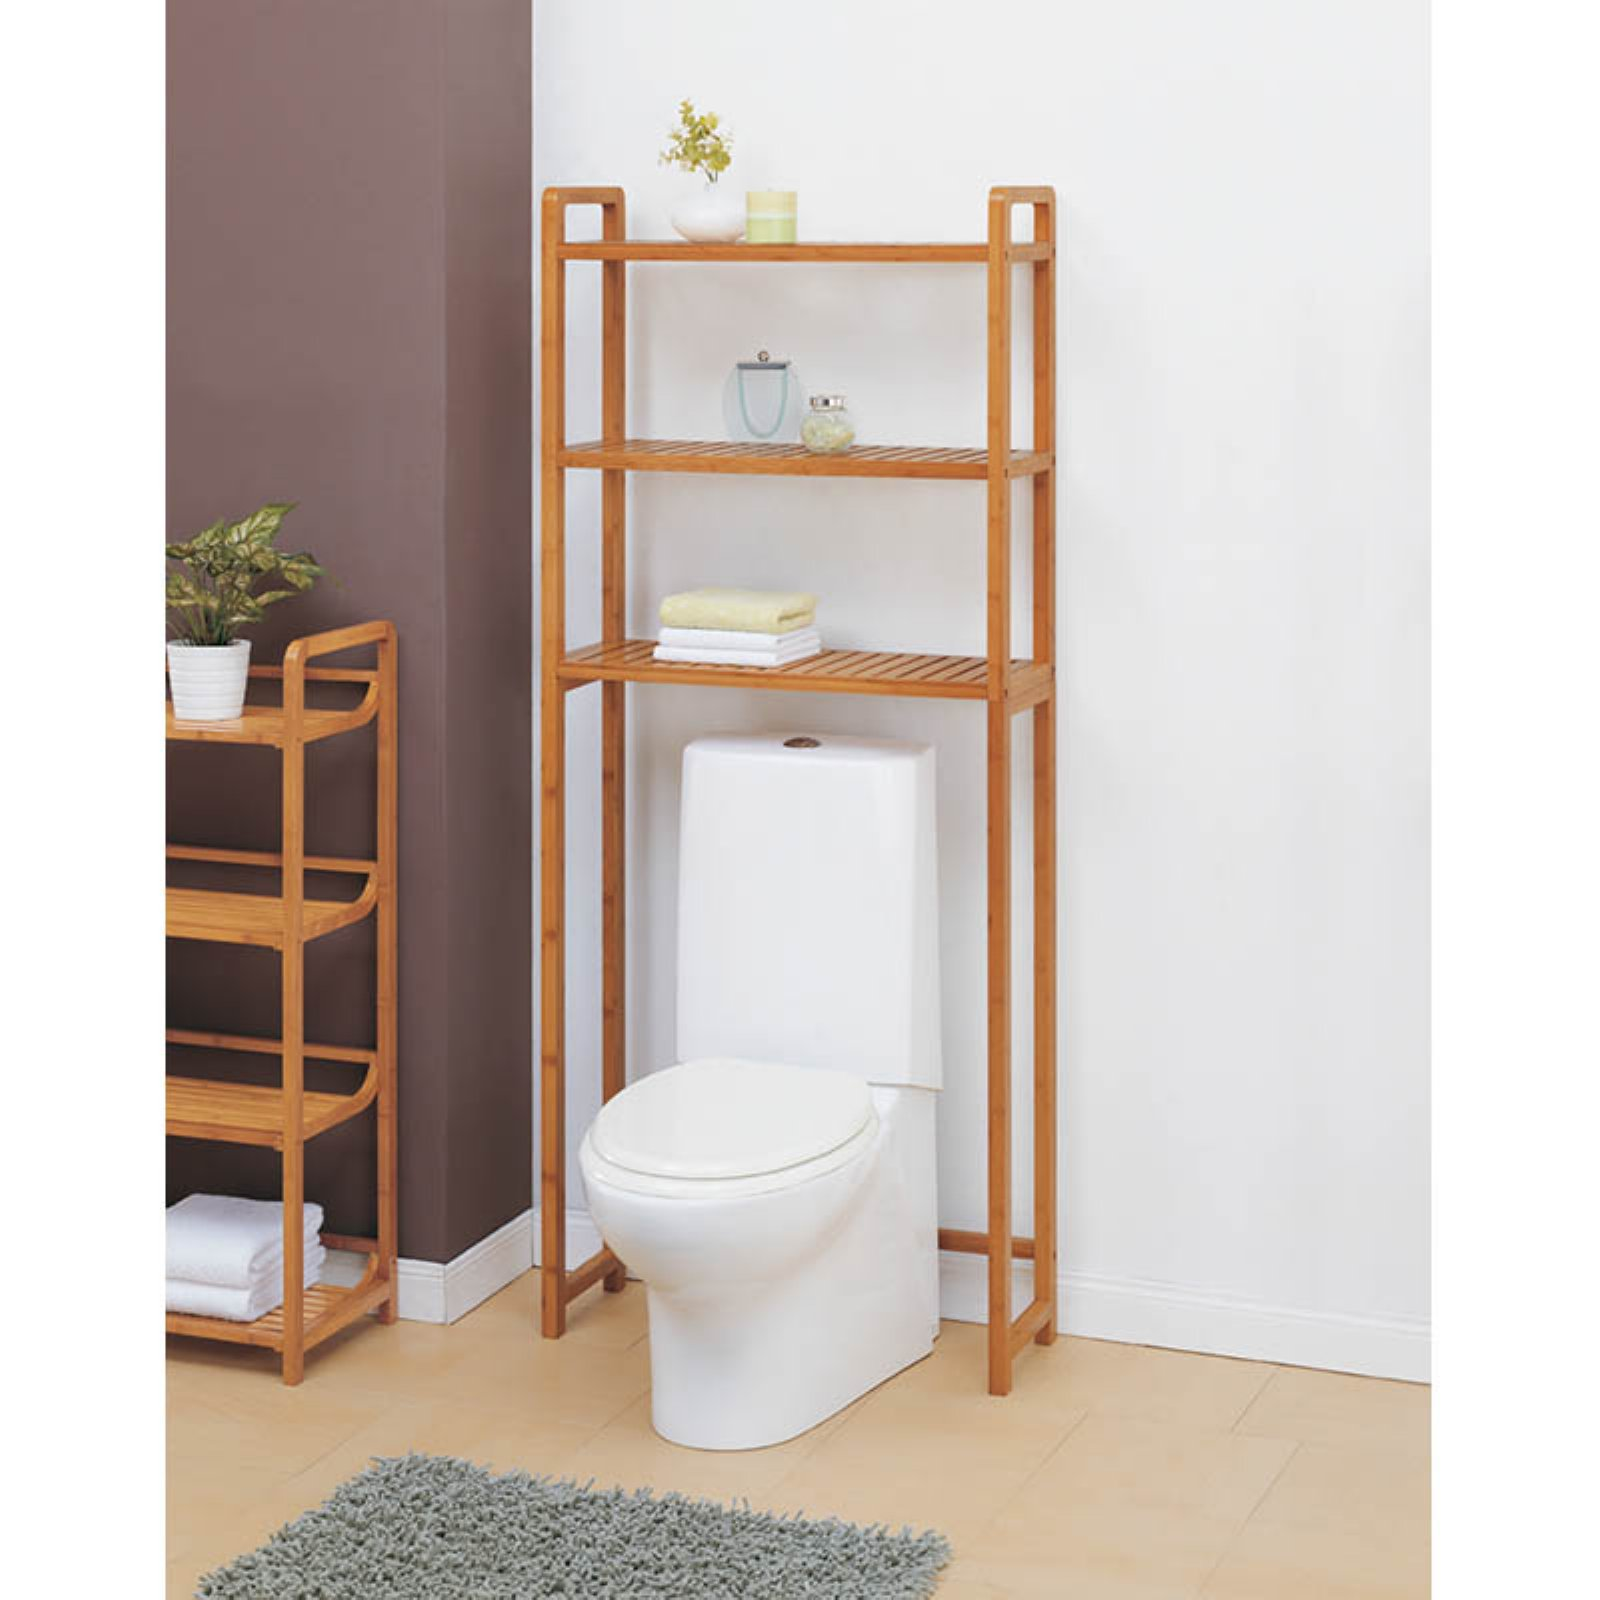 Organize It All Lohas 29941W-1 Bathroom Spacesaver